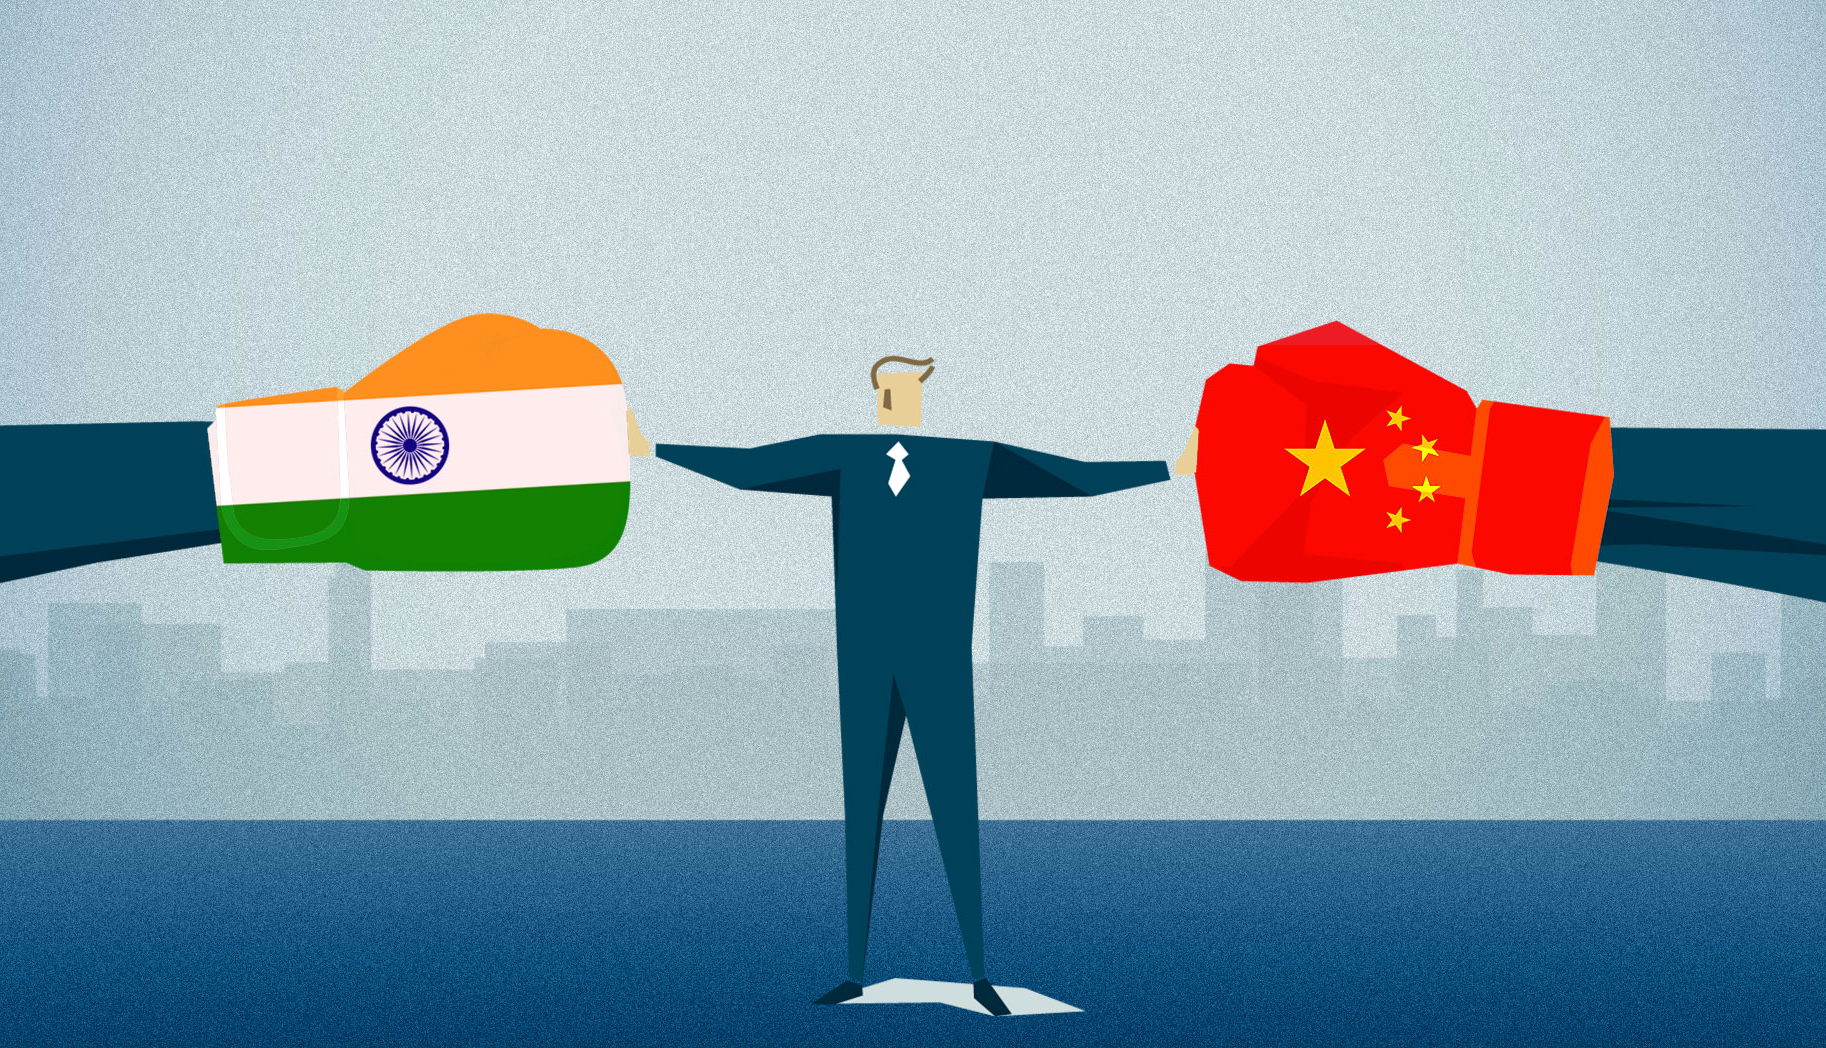 The United States has on Aug 27 expressed hope that India and China could negotiate a peaceful resolution to the ongoing Doklam standoff which had continued since Jun 16 while expressing support for the restoration of the status quo. (Graphic art courtesy: thequint)